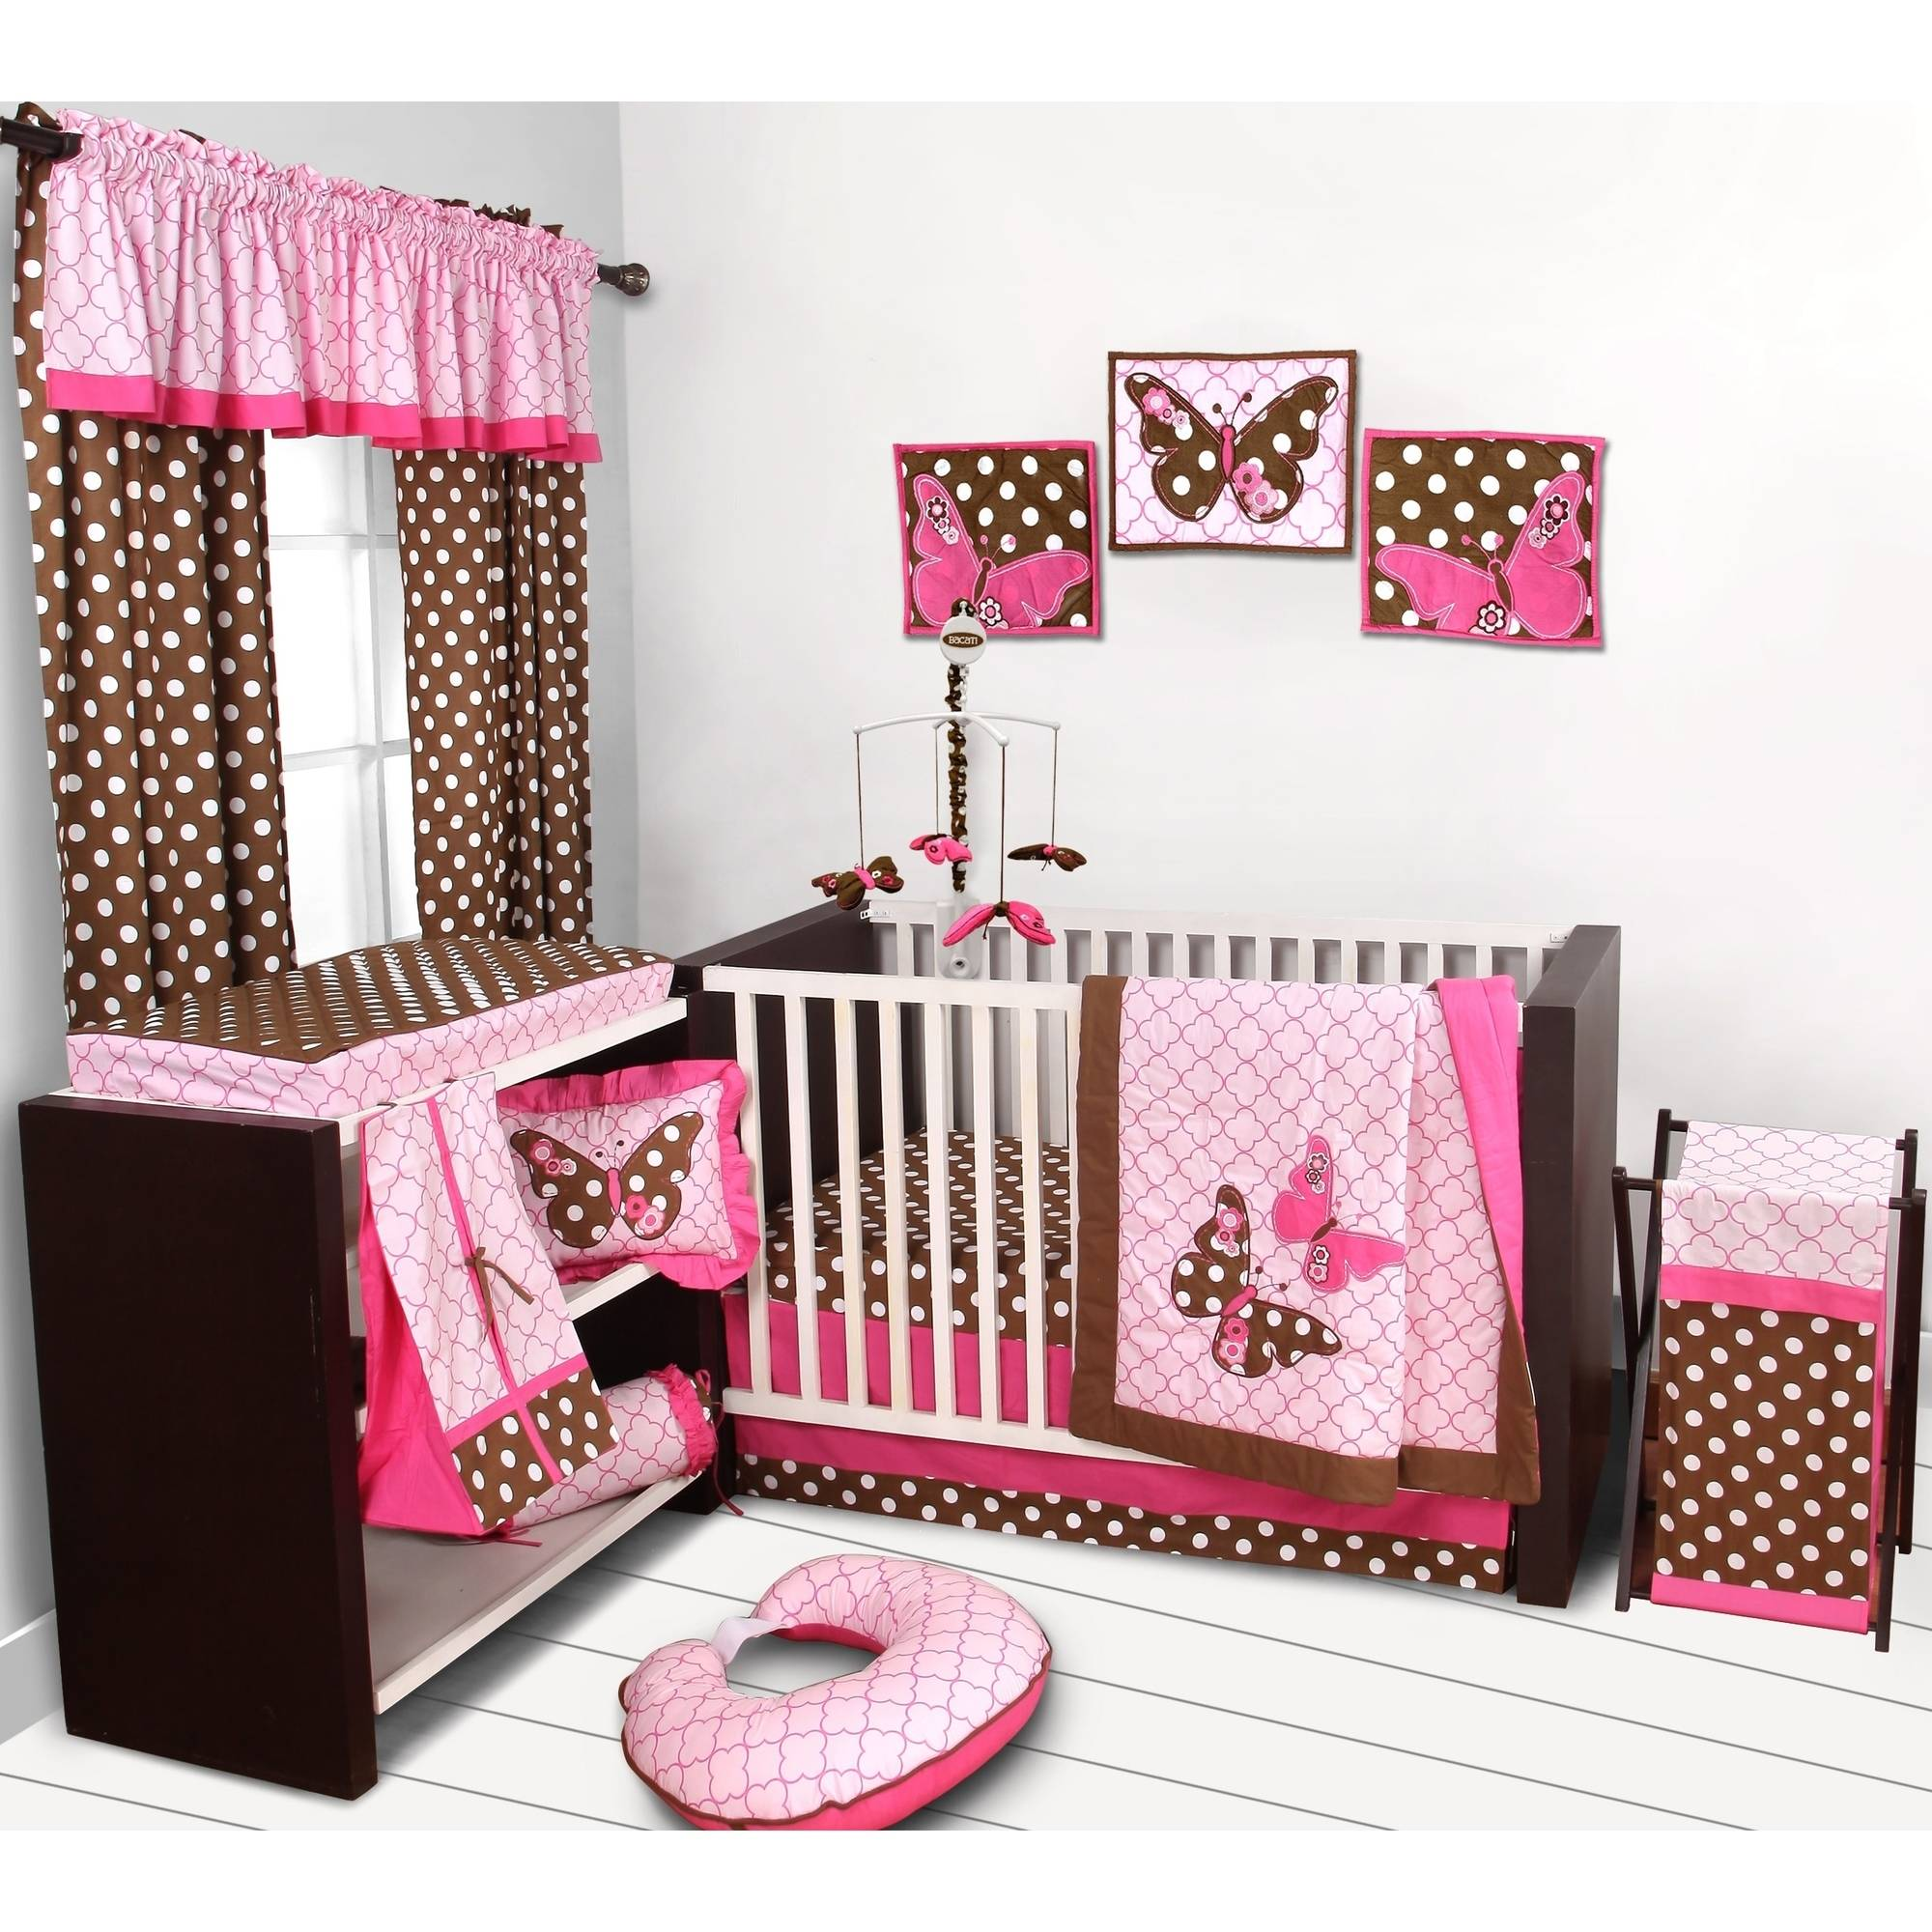 Bacati Butterflies 10-Piece Nursery in a Bag Crib Bedding Set, Pink/Chocolate